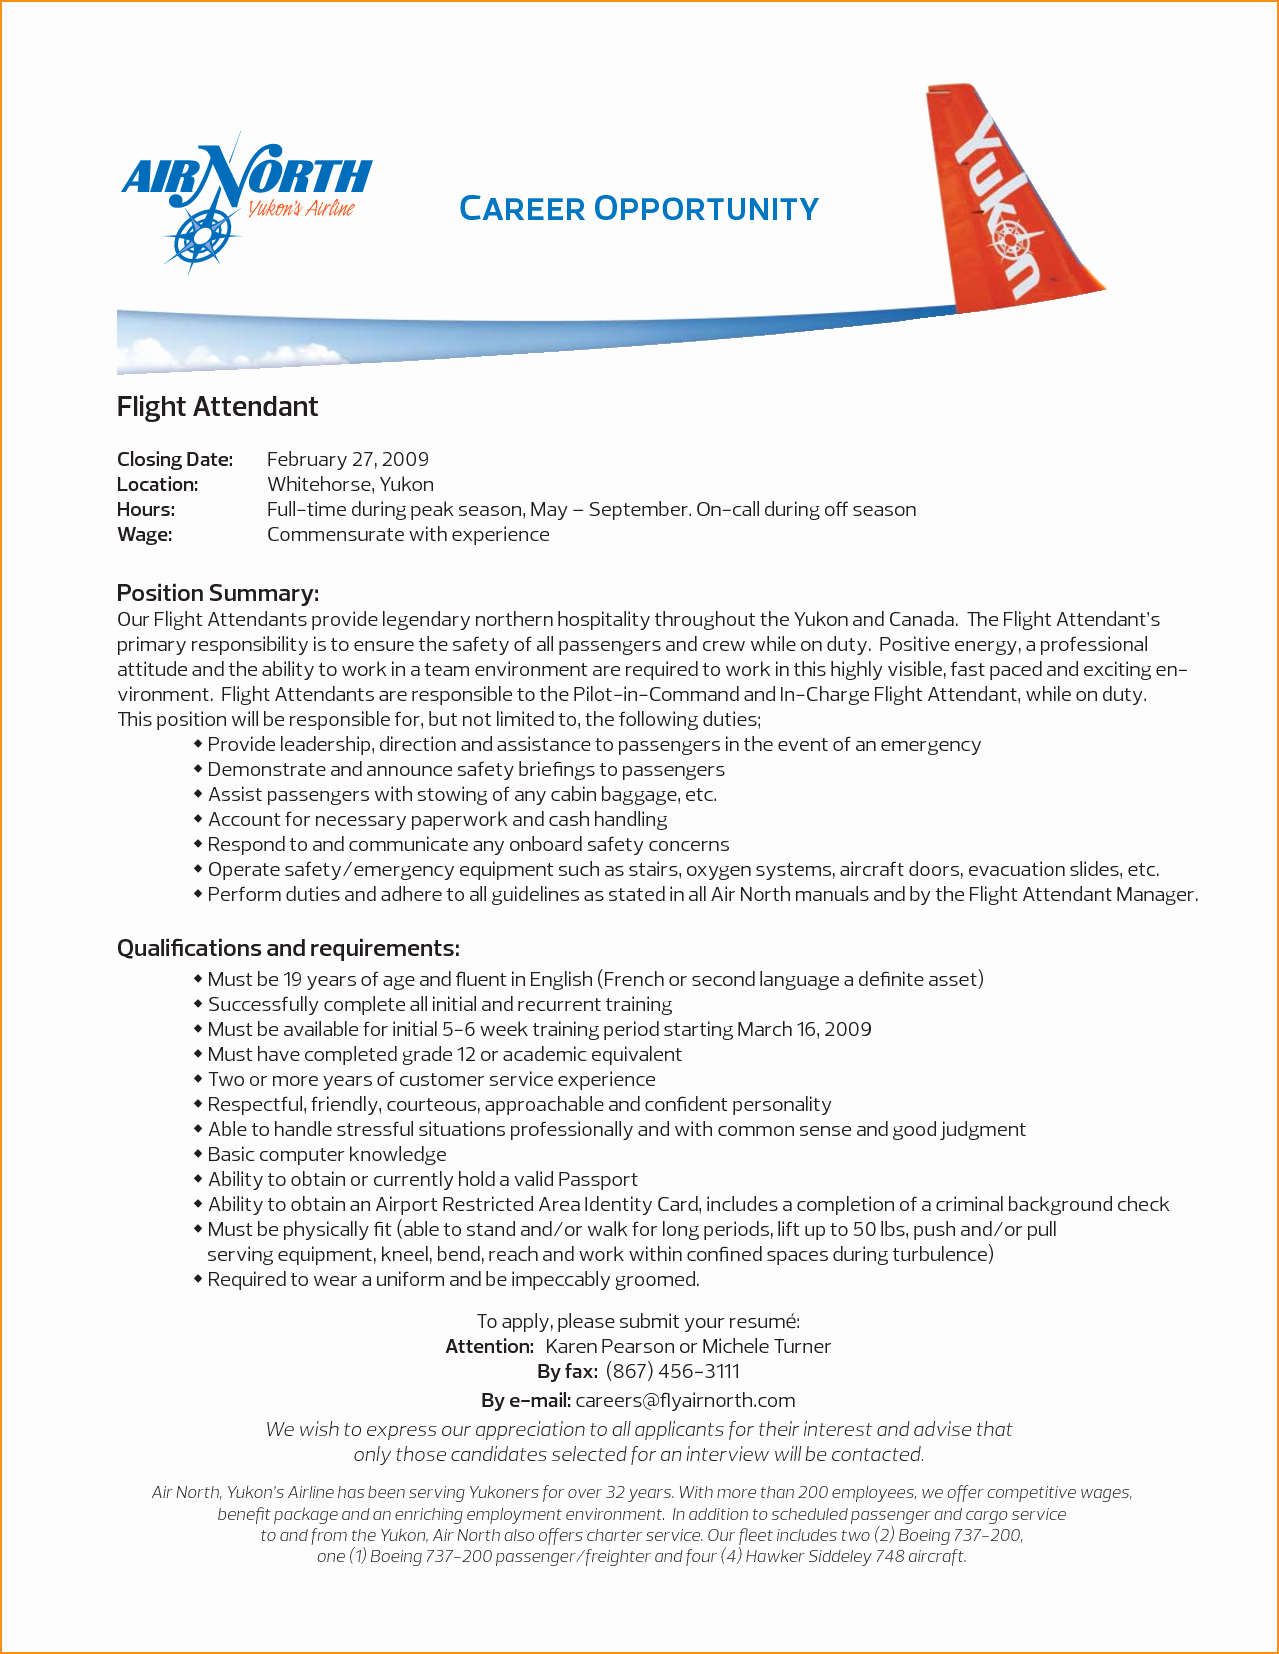 Flight attendant Cover Letter Example Unique Cover Letter for Flight attendant Position with No